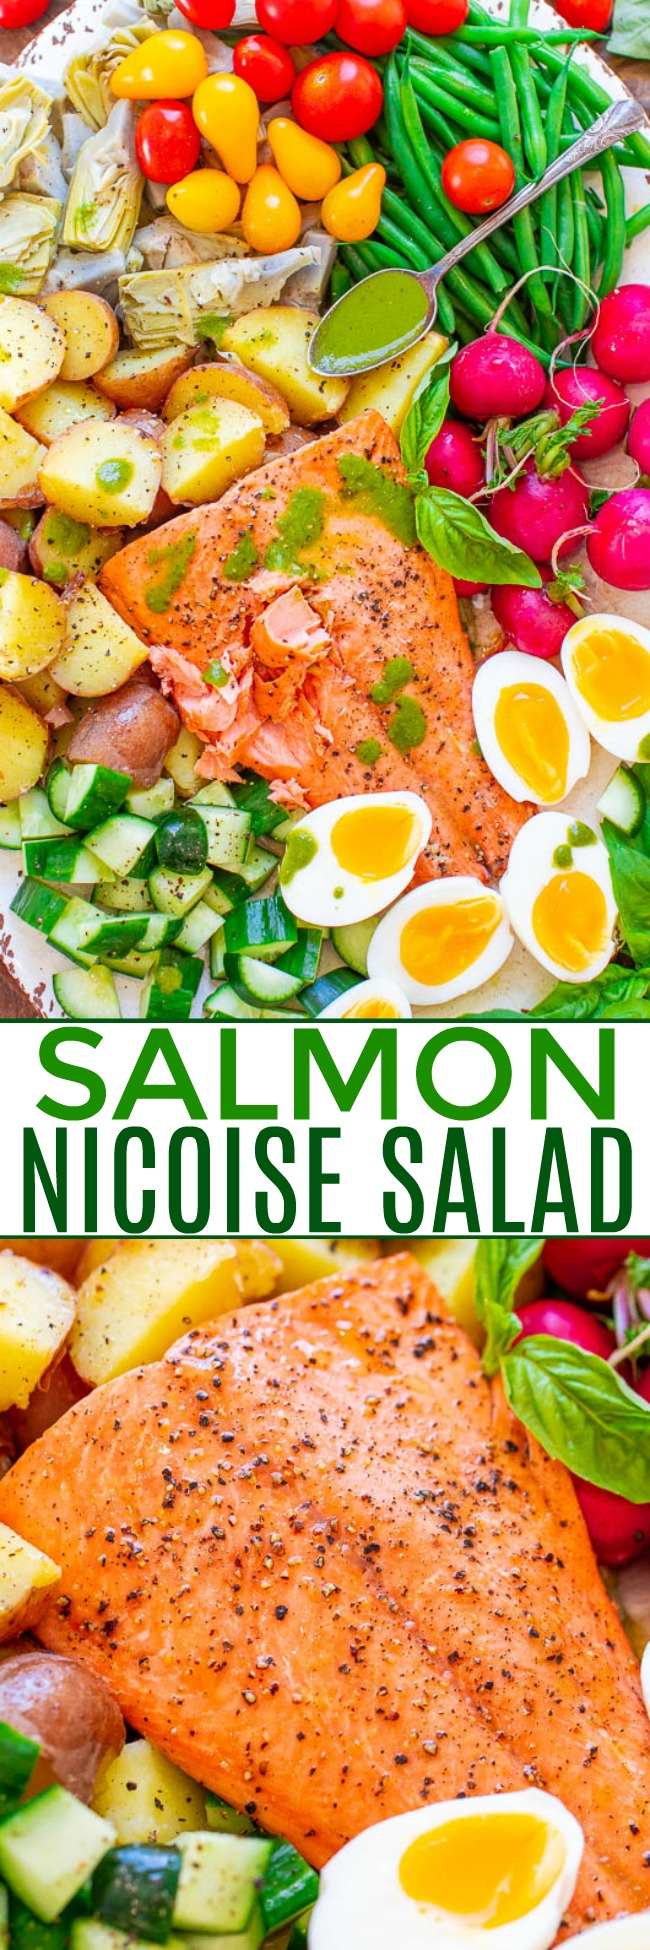 Salmon Niçoise Salad with Basil Vinaigrette - An ELEGANT French-inspired salad with juicy salmon, tender potatoes, soft-boiled eggs, crispy haricots verts, and more - all drizzled with a super FLAVORFUL fresh basil vinaigrette!! This BEAUTIFUL salad has something for everyone!!